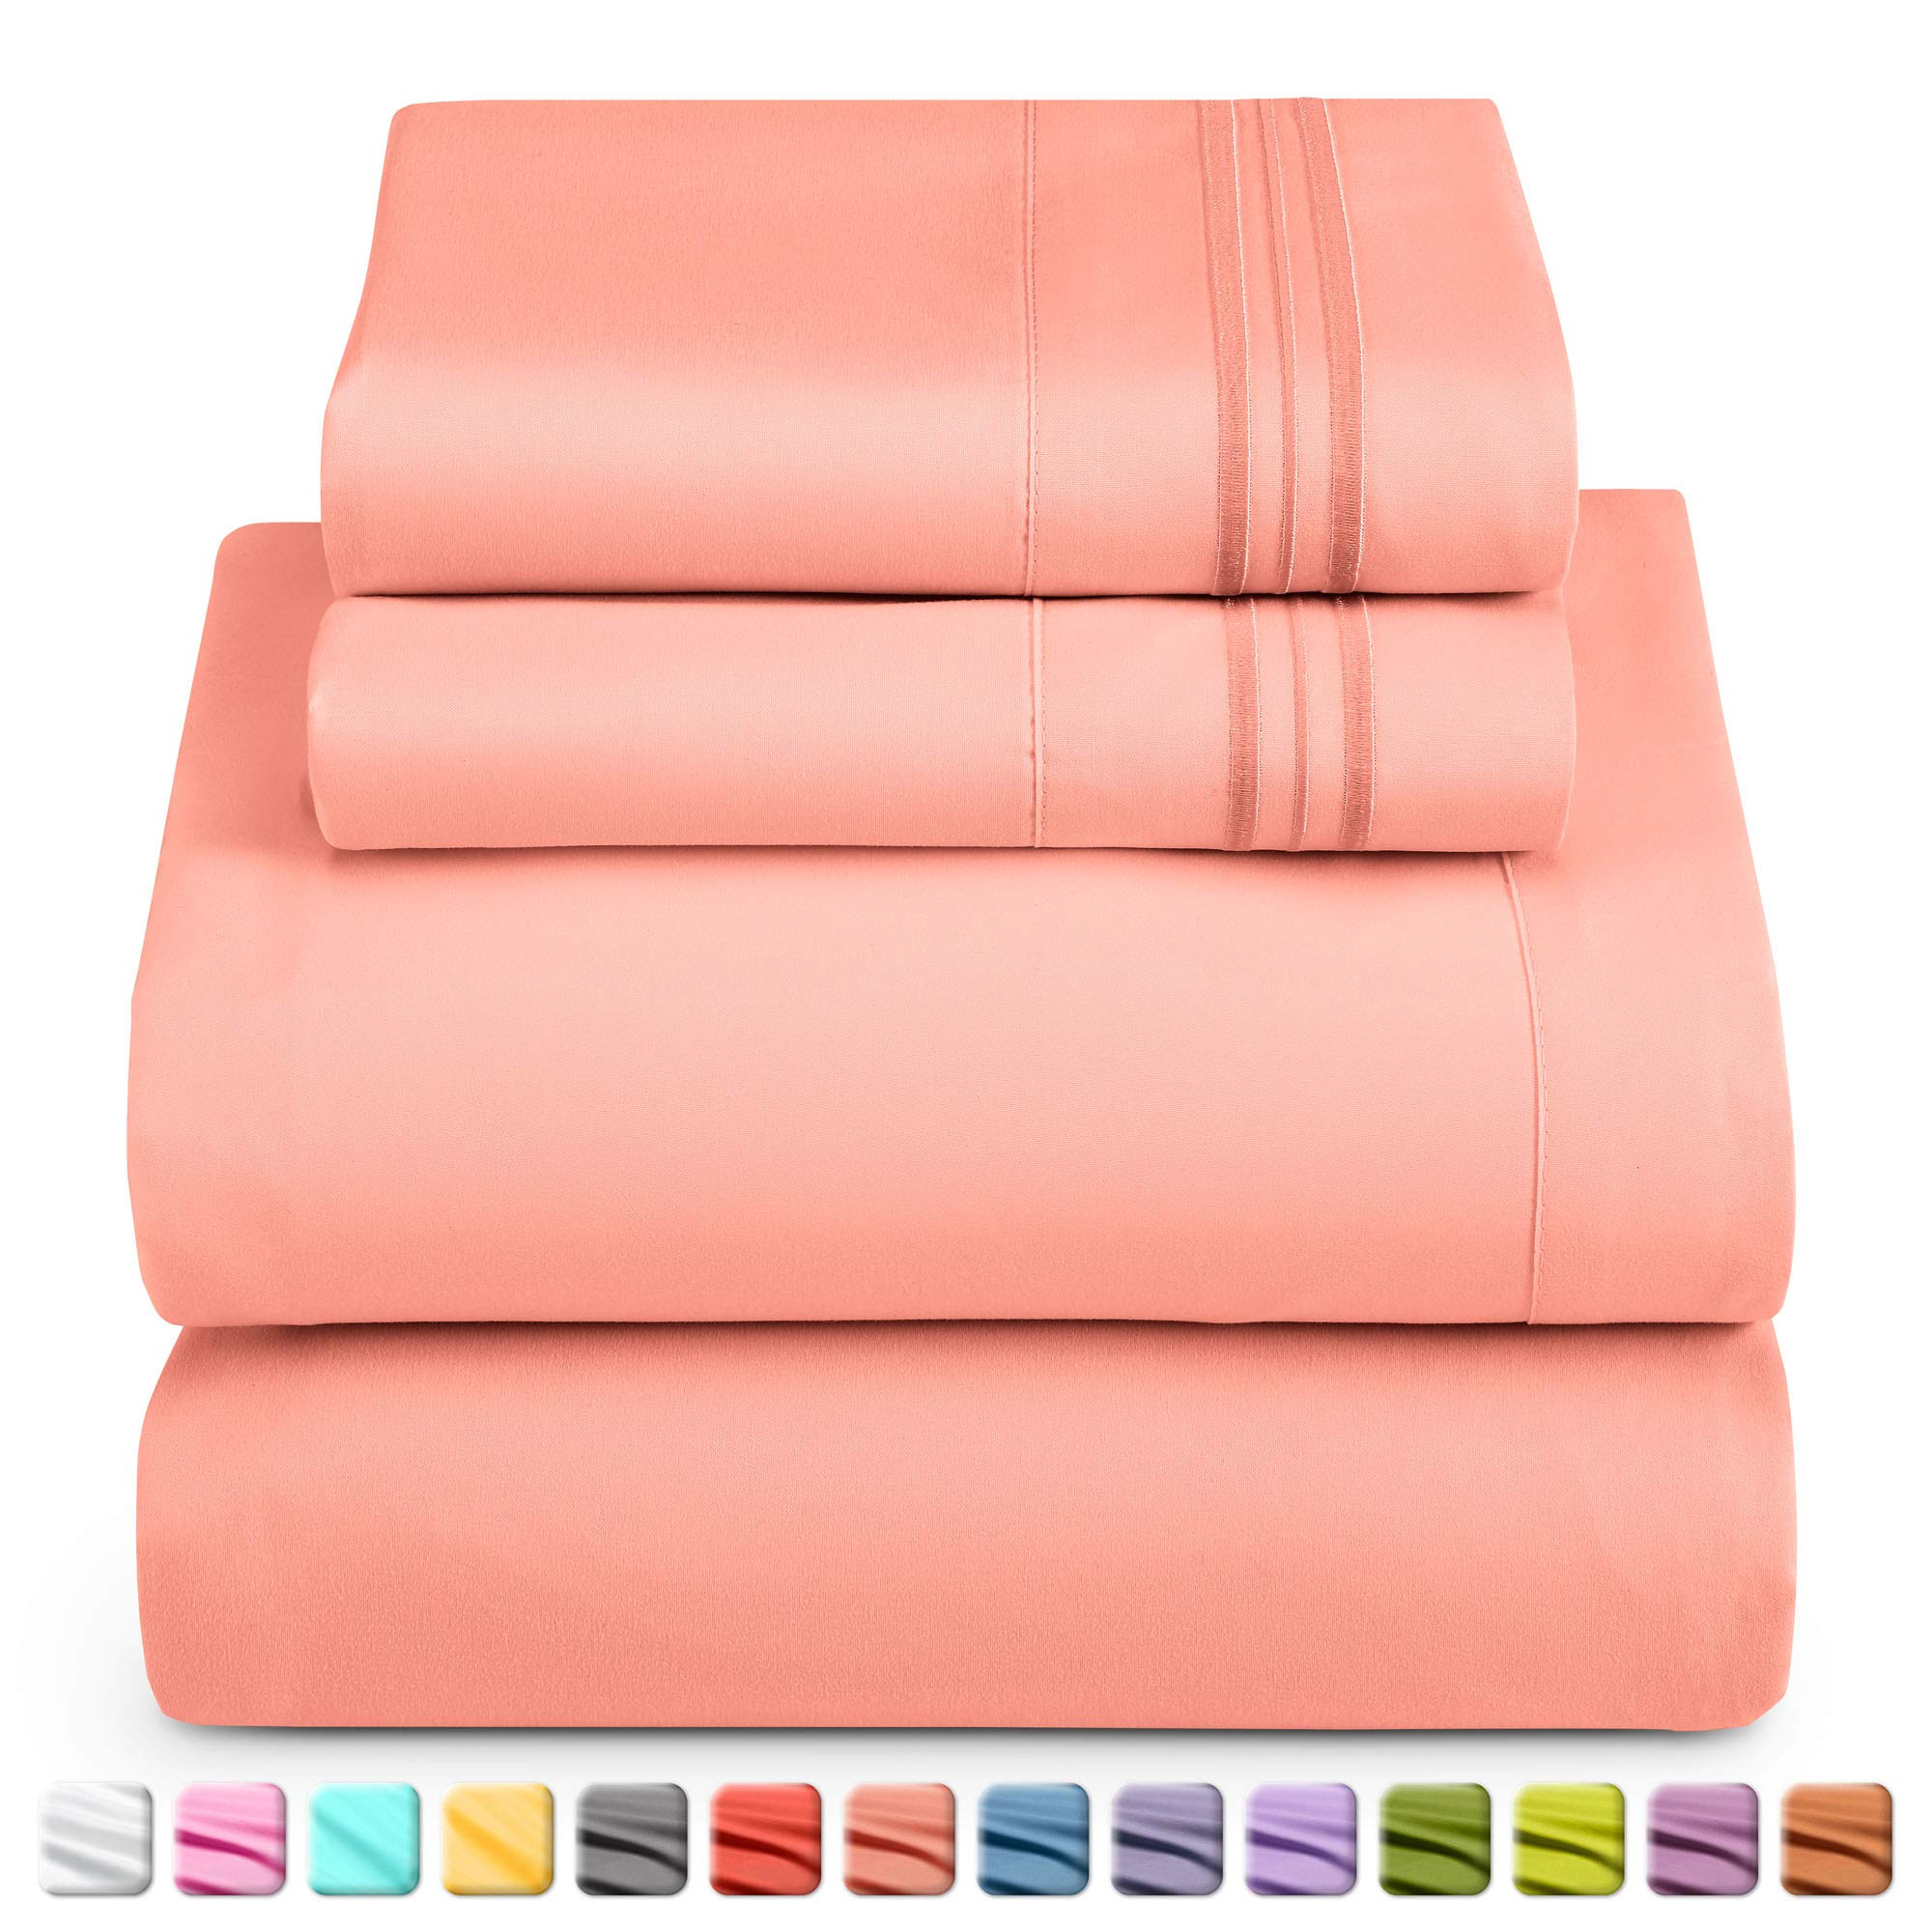 Nestl Deep Pocket Cal King Sheets: 4 Piece Cal King Size Bed Sheets with Fitted Sheet, Flat Sheet, Pillow Cases Extra Soft Microfiber Bedsheet Set with Deep Pockets for CK Sized Mattress - Misty Rose